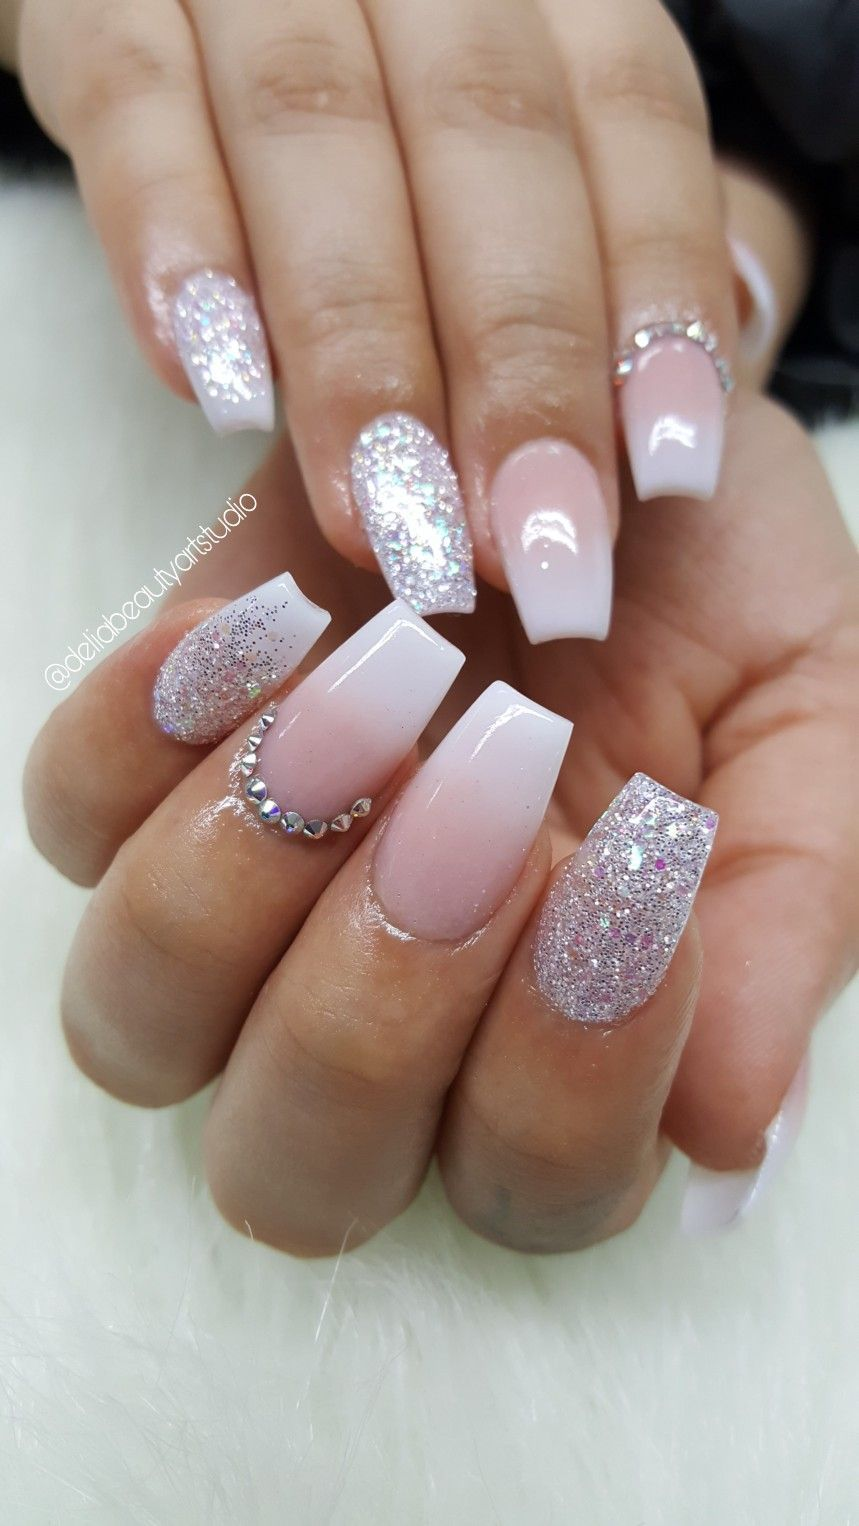 Ombre acrylic nails coffin shape nail design short nails